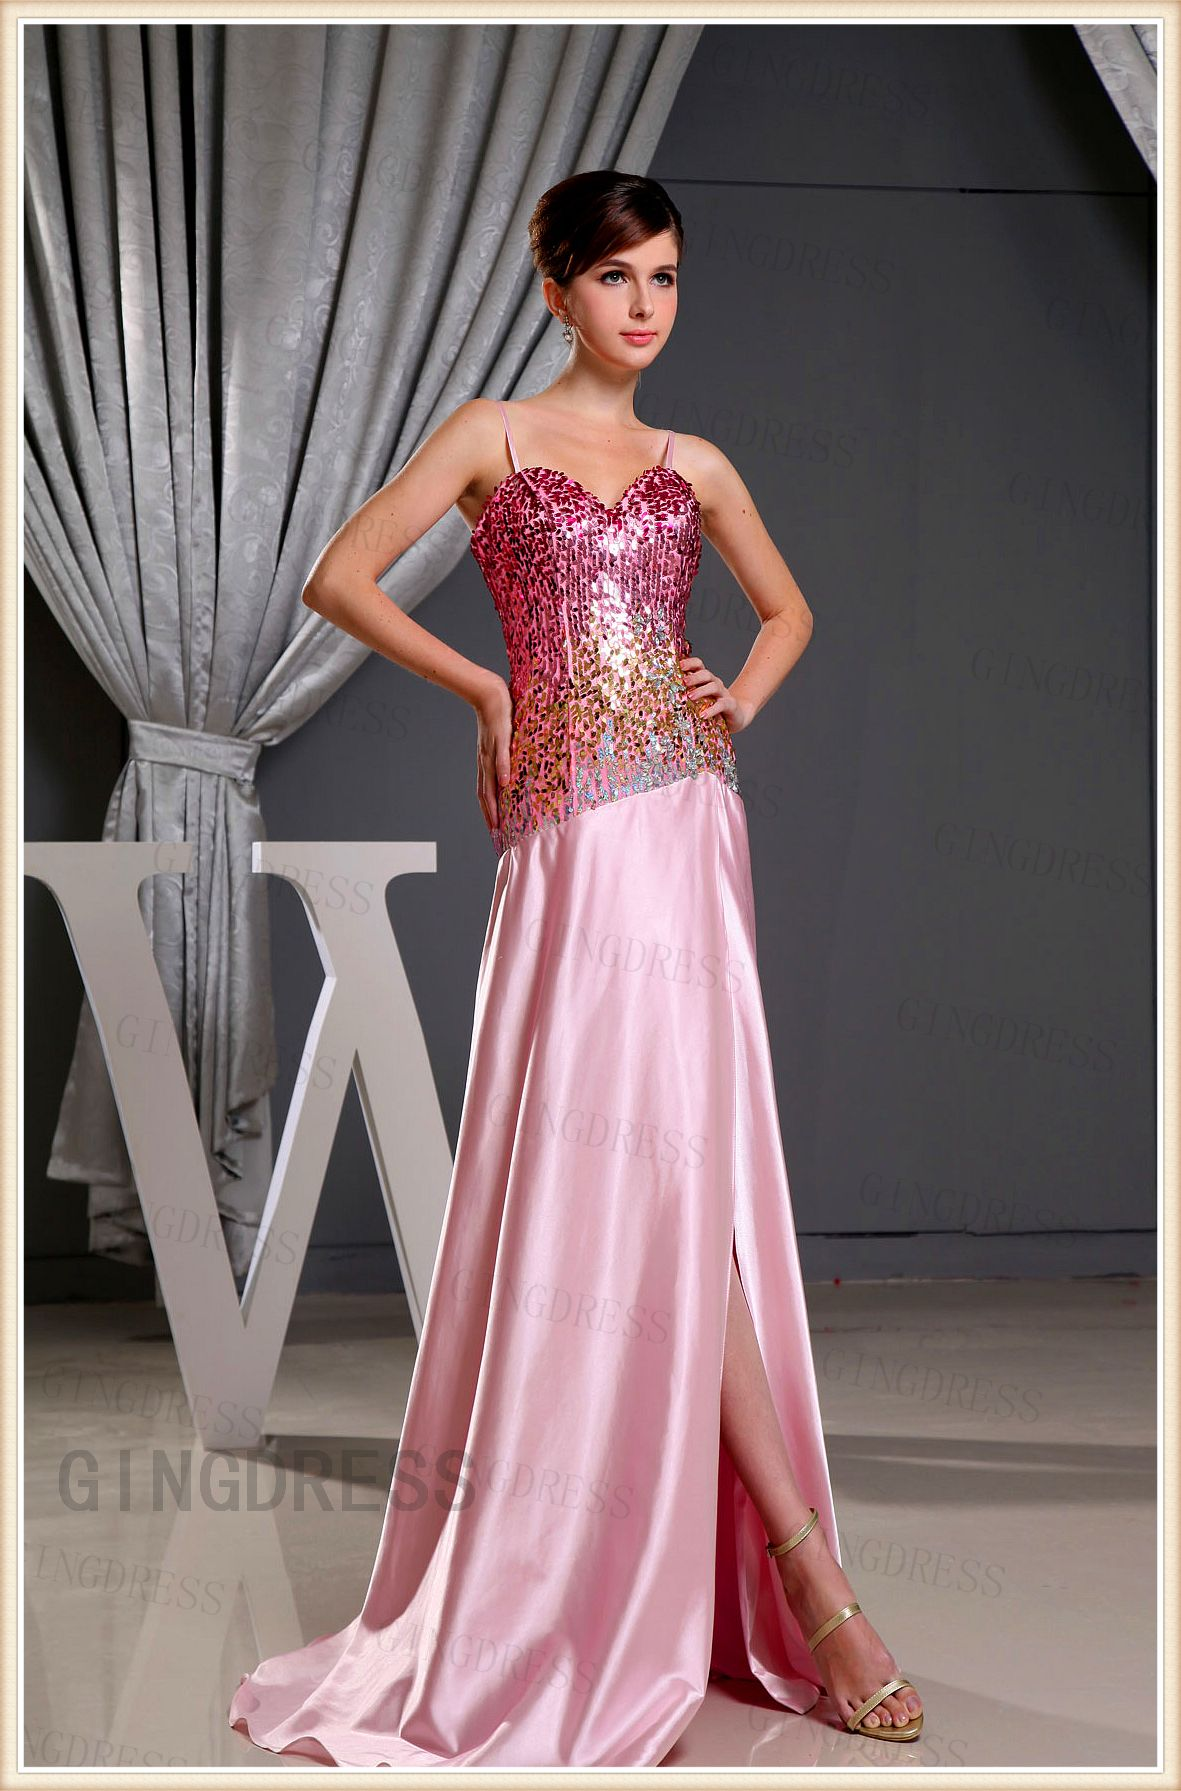 Pin by aida del c alejandro on i do pinterest prom natural and